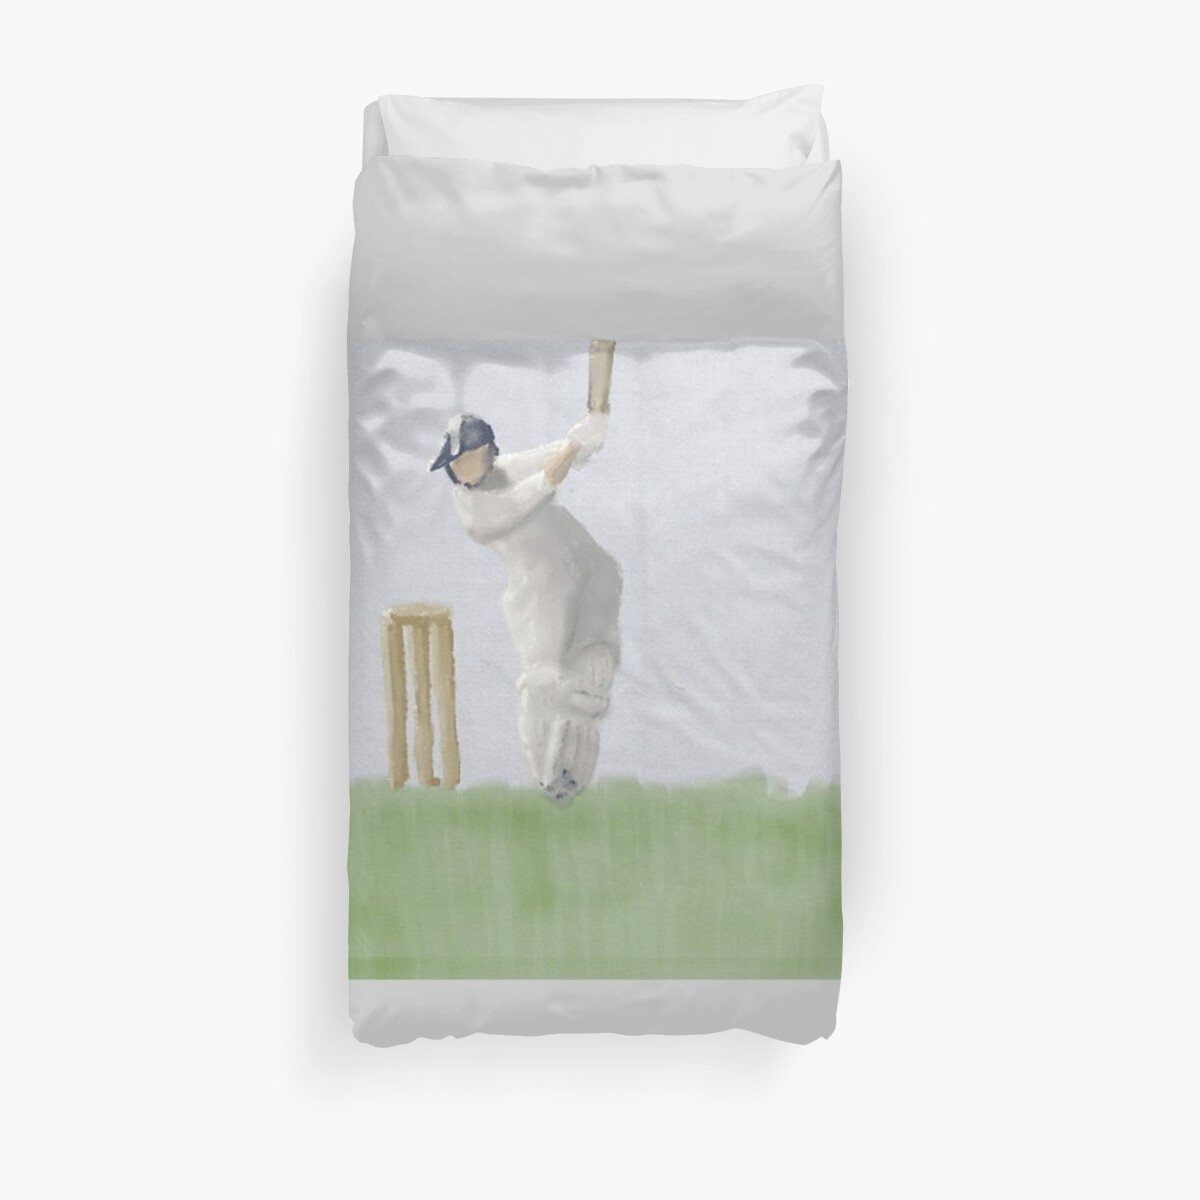 Quot Cricket Quot Duvet Covers By Eternaletizia Redbubble